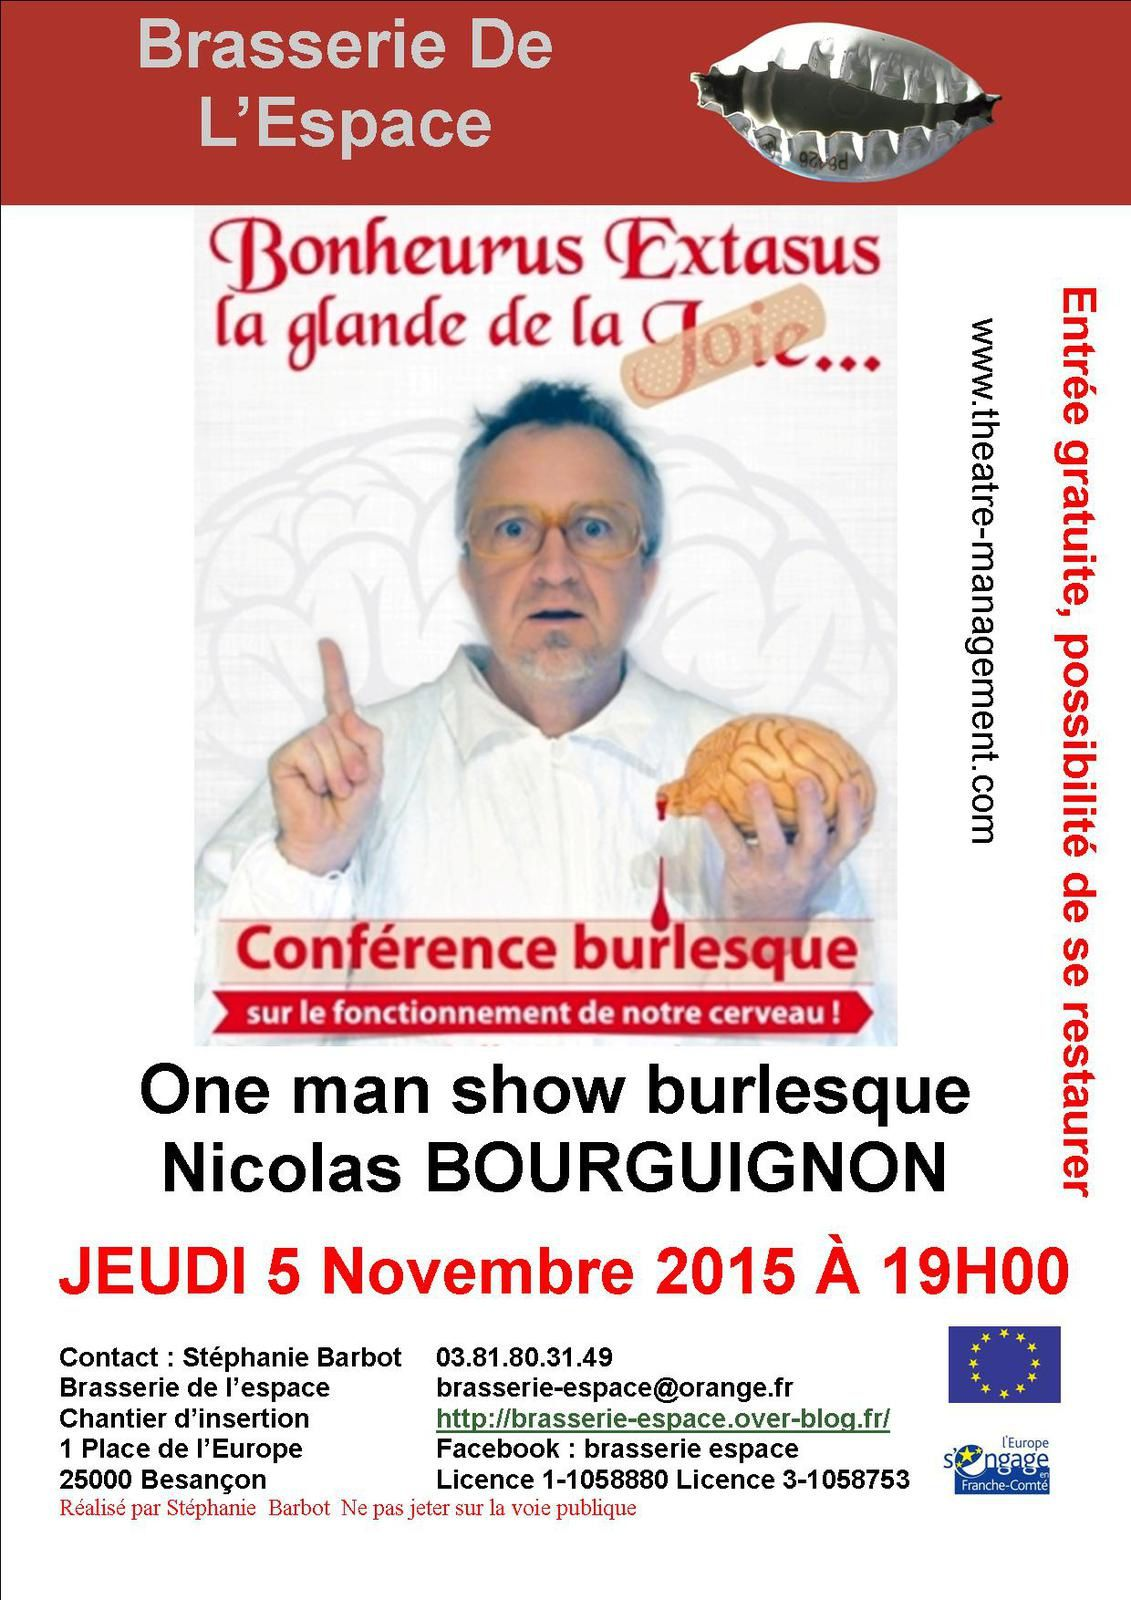 One man show burlesque 5 Novembre 2015